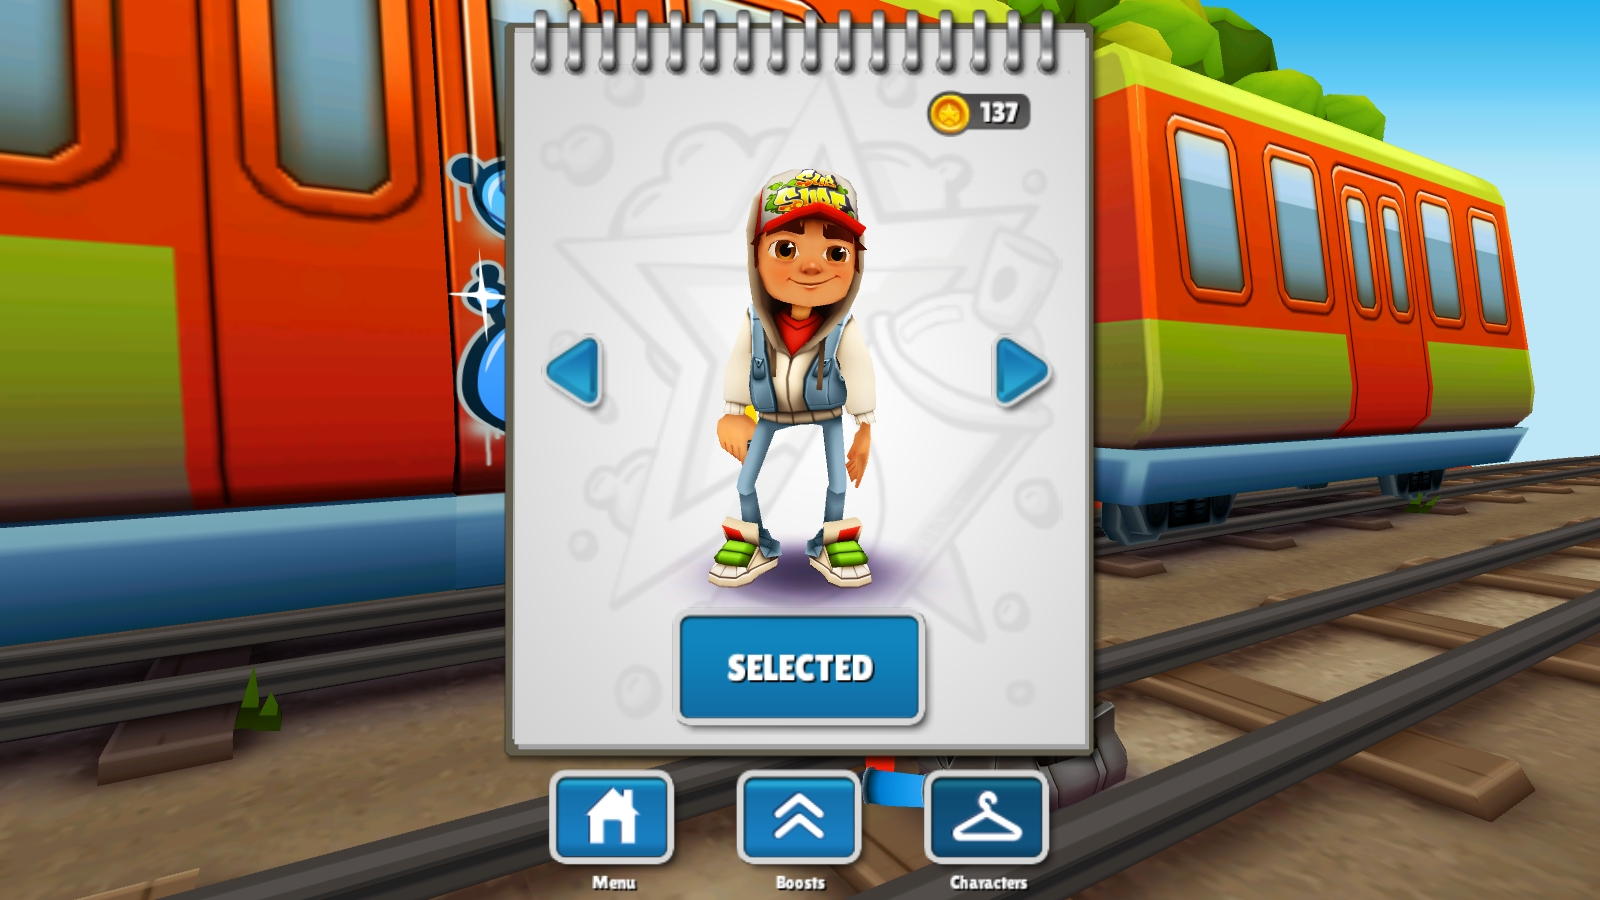 Скачать subway surfers играть на компьютере бесплатно